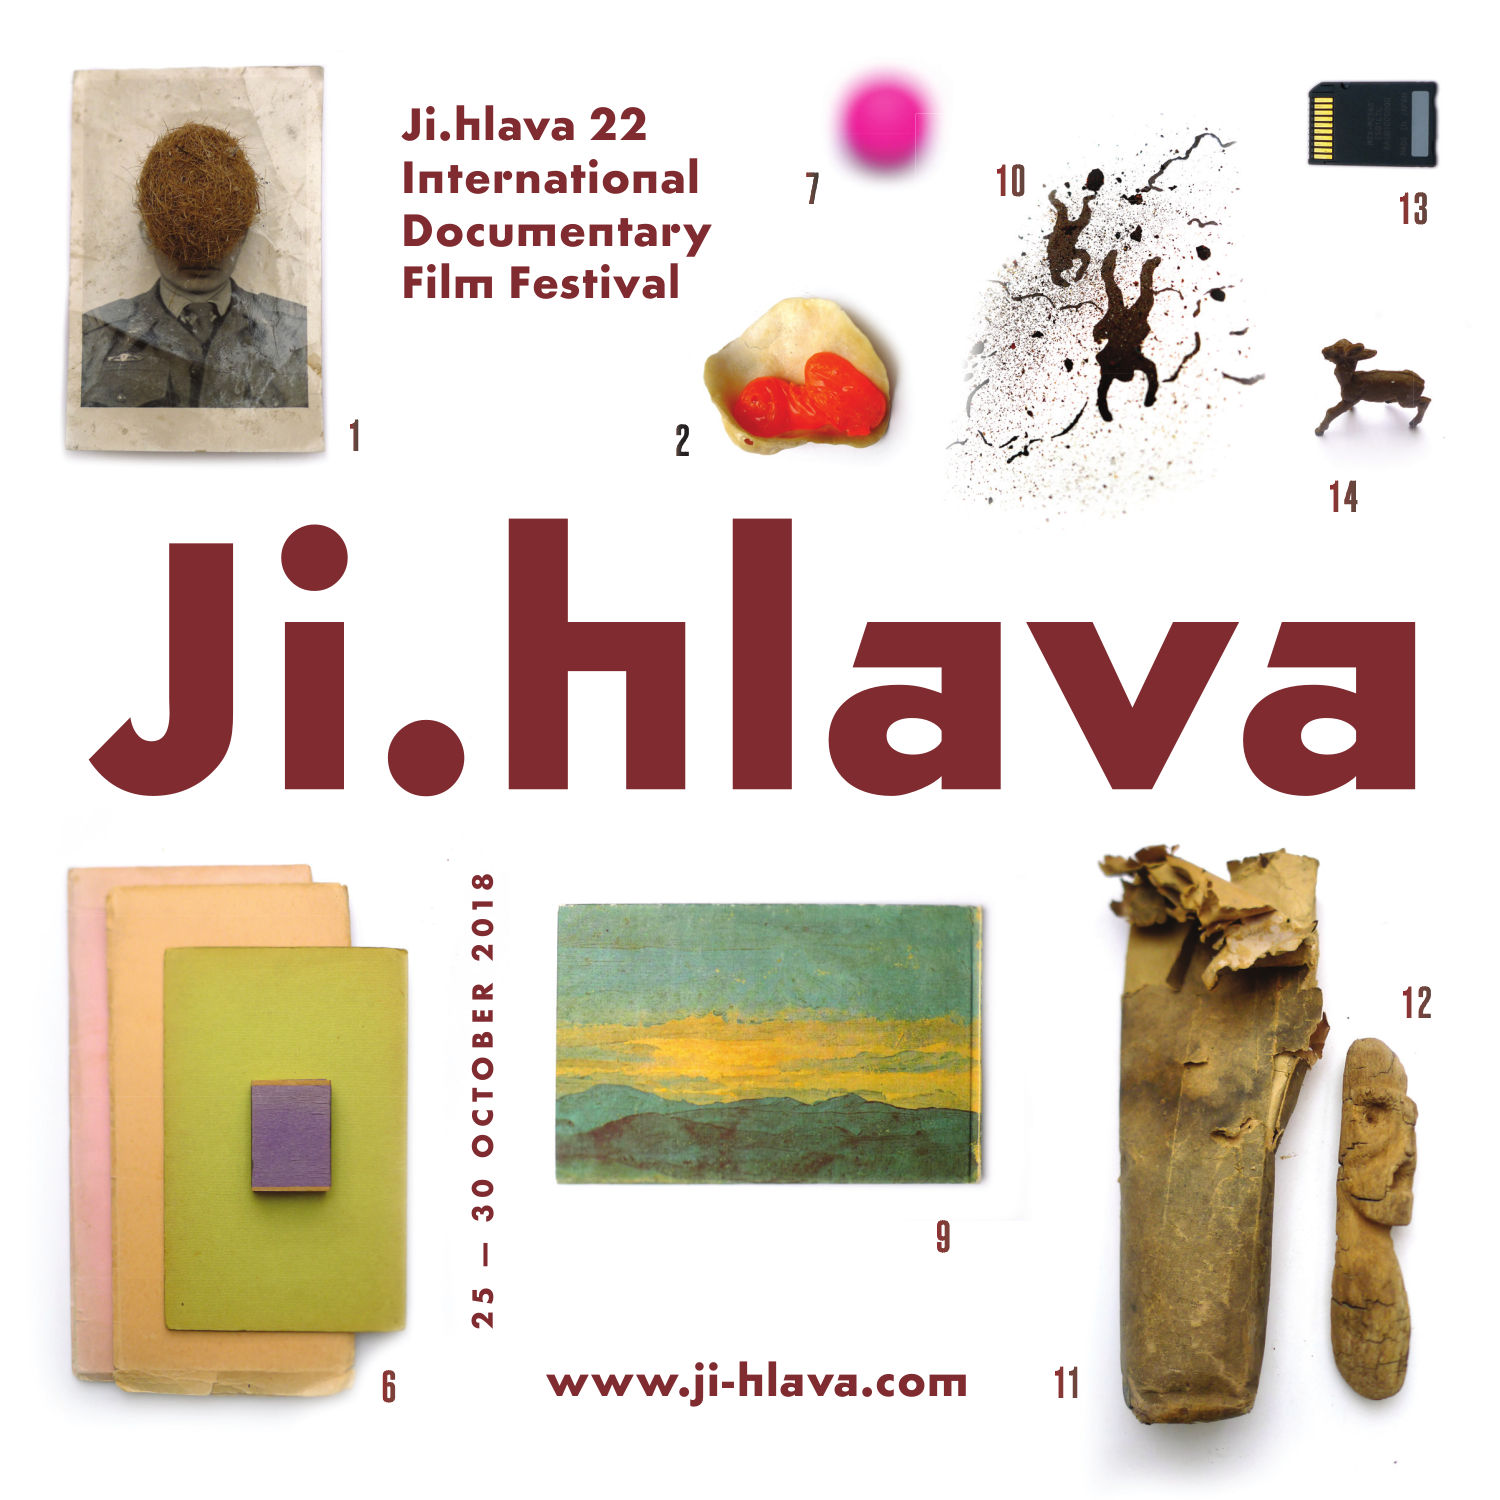 Jihlava International Documentary Film Festival